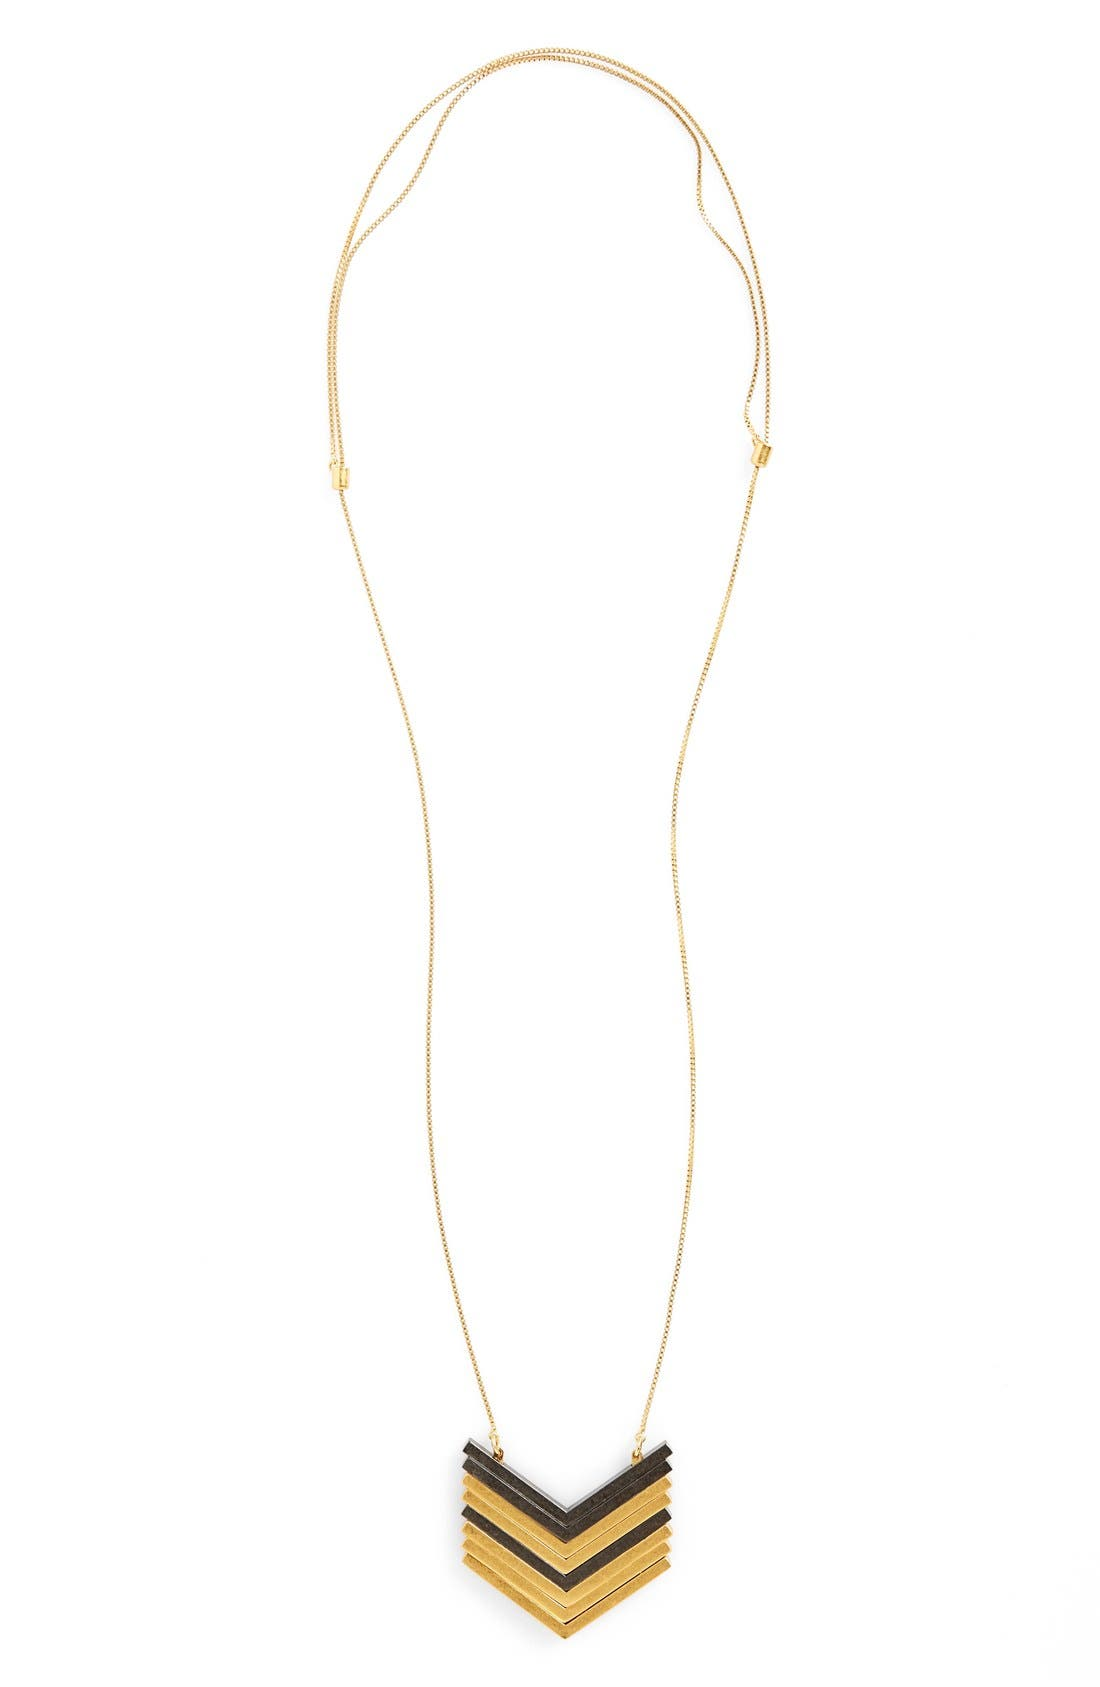 Chevron pendants in both goldtone and gunmetal finishes stack together to create bohemian charm on a chain necklace fashioned with an adjustable slide closure so you can wear it at various lengths for styling versatility. Style Name: Madewell Arrowstack Necklace. Style Number: 5187201. Available in stores.